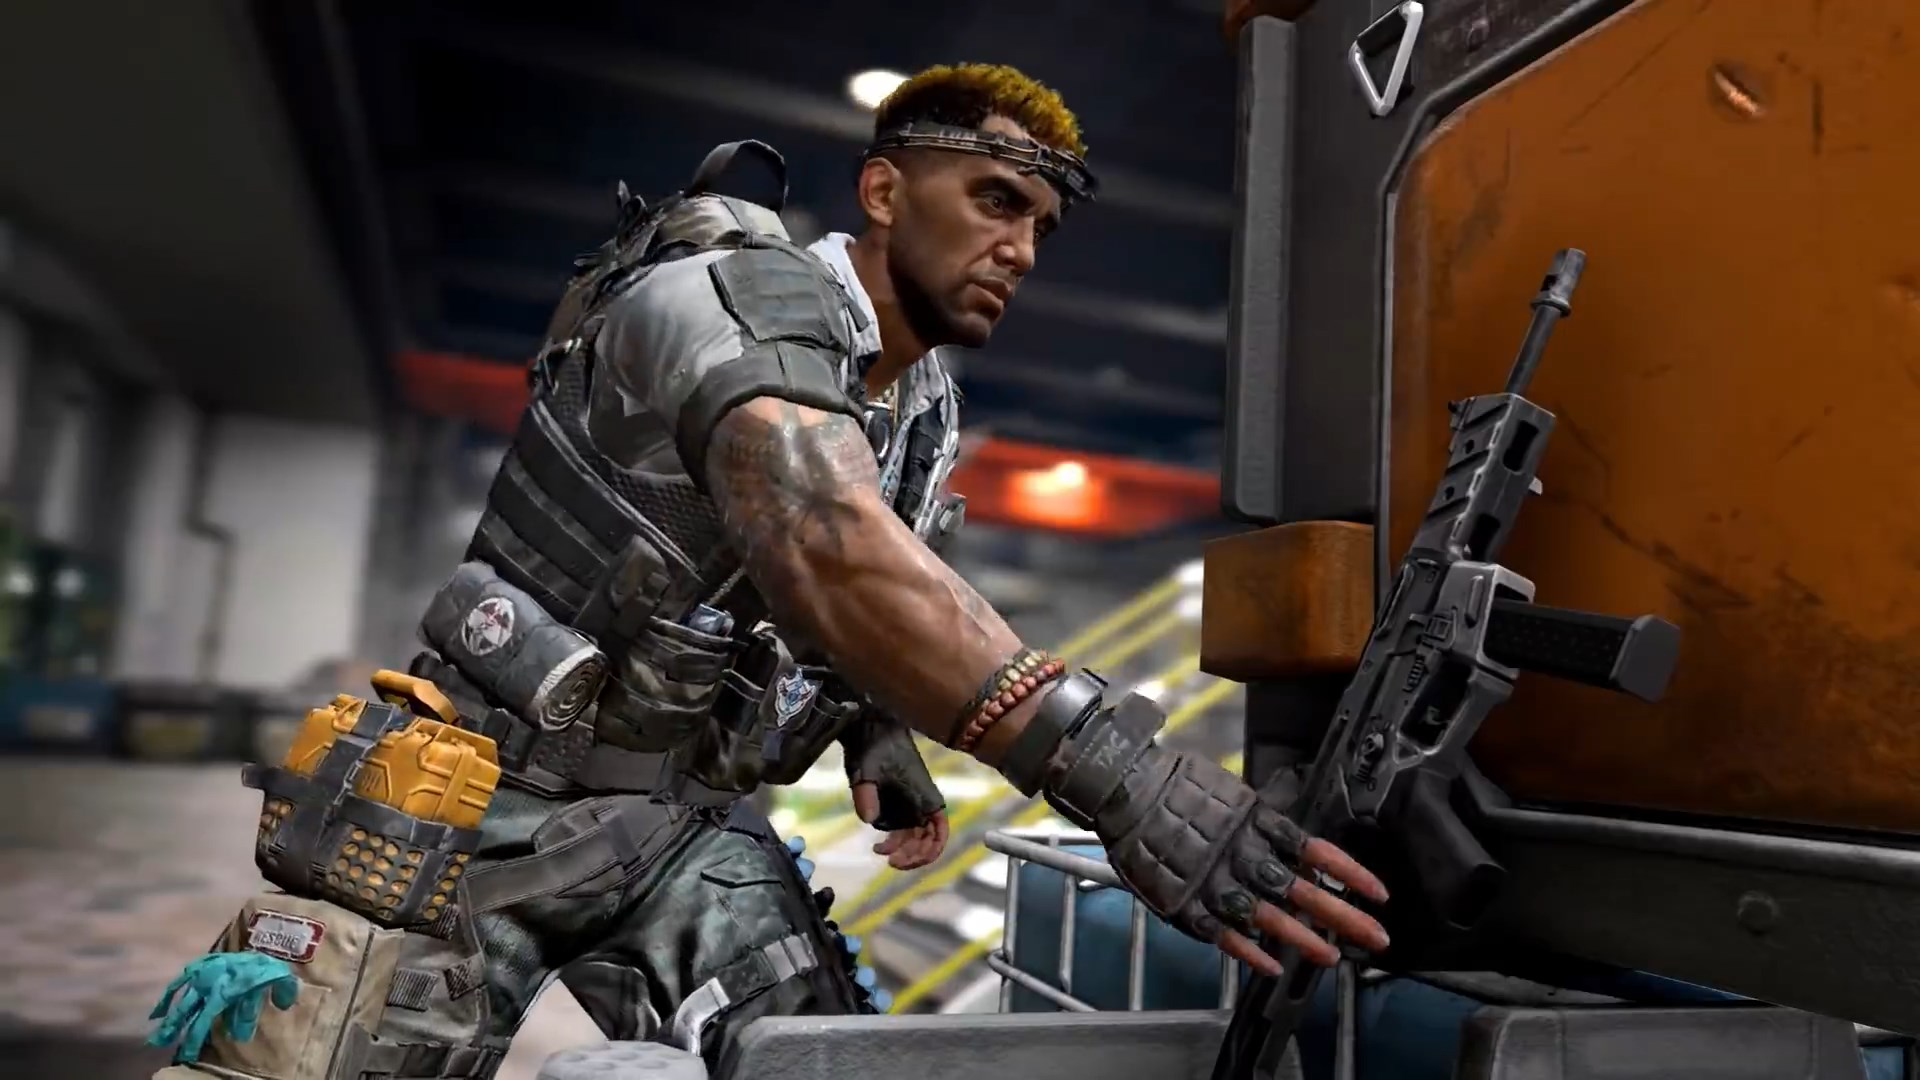 Blackout Private Beta Updated Again on PS4, New 'Close Quarters' Playlist Added